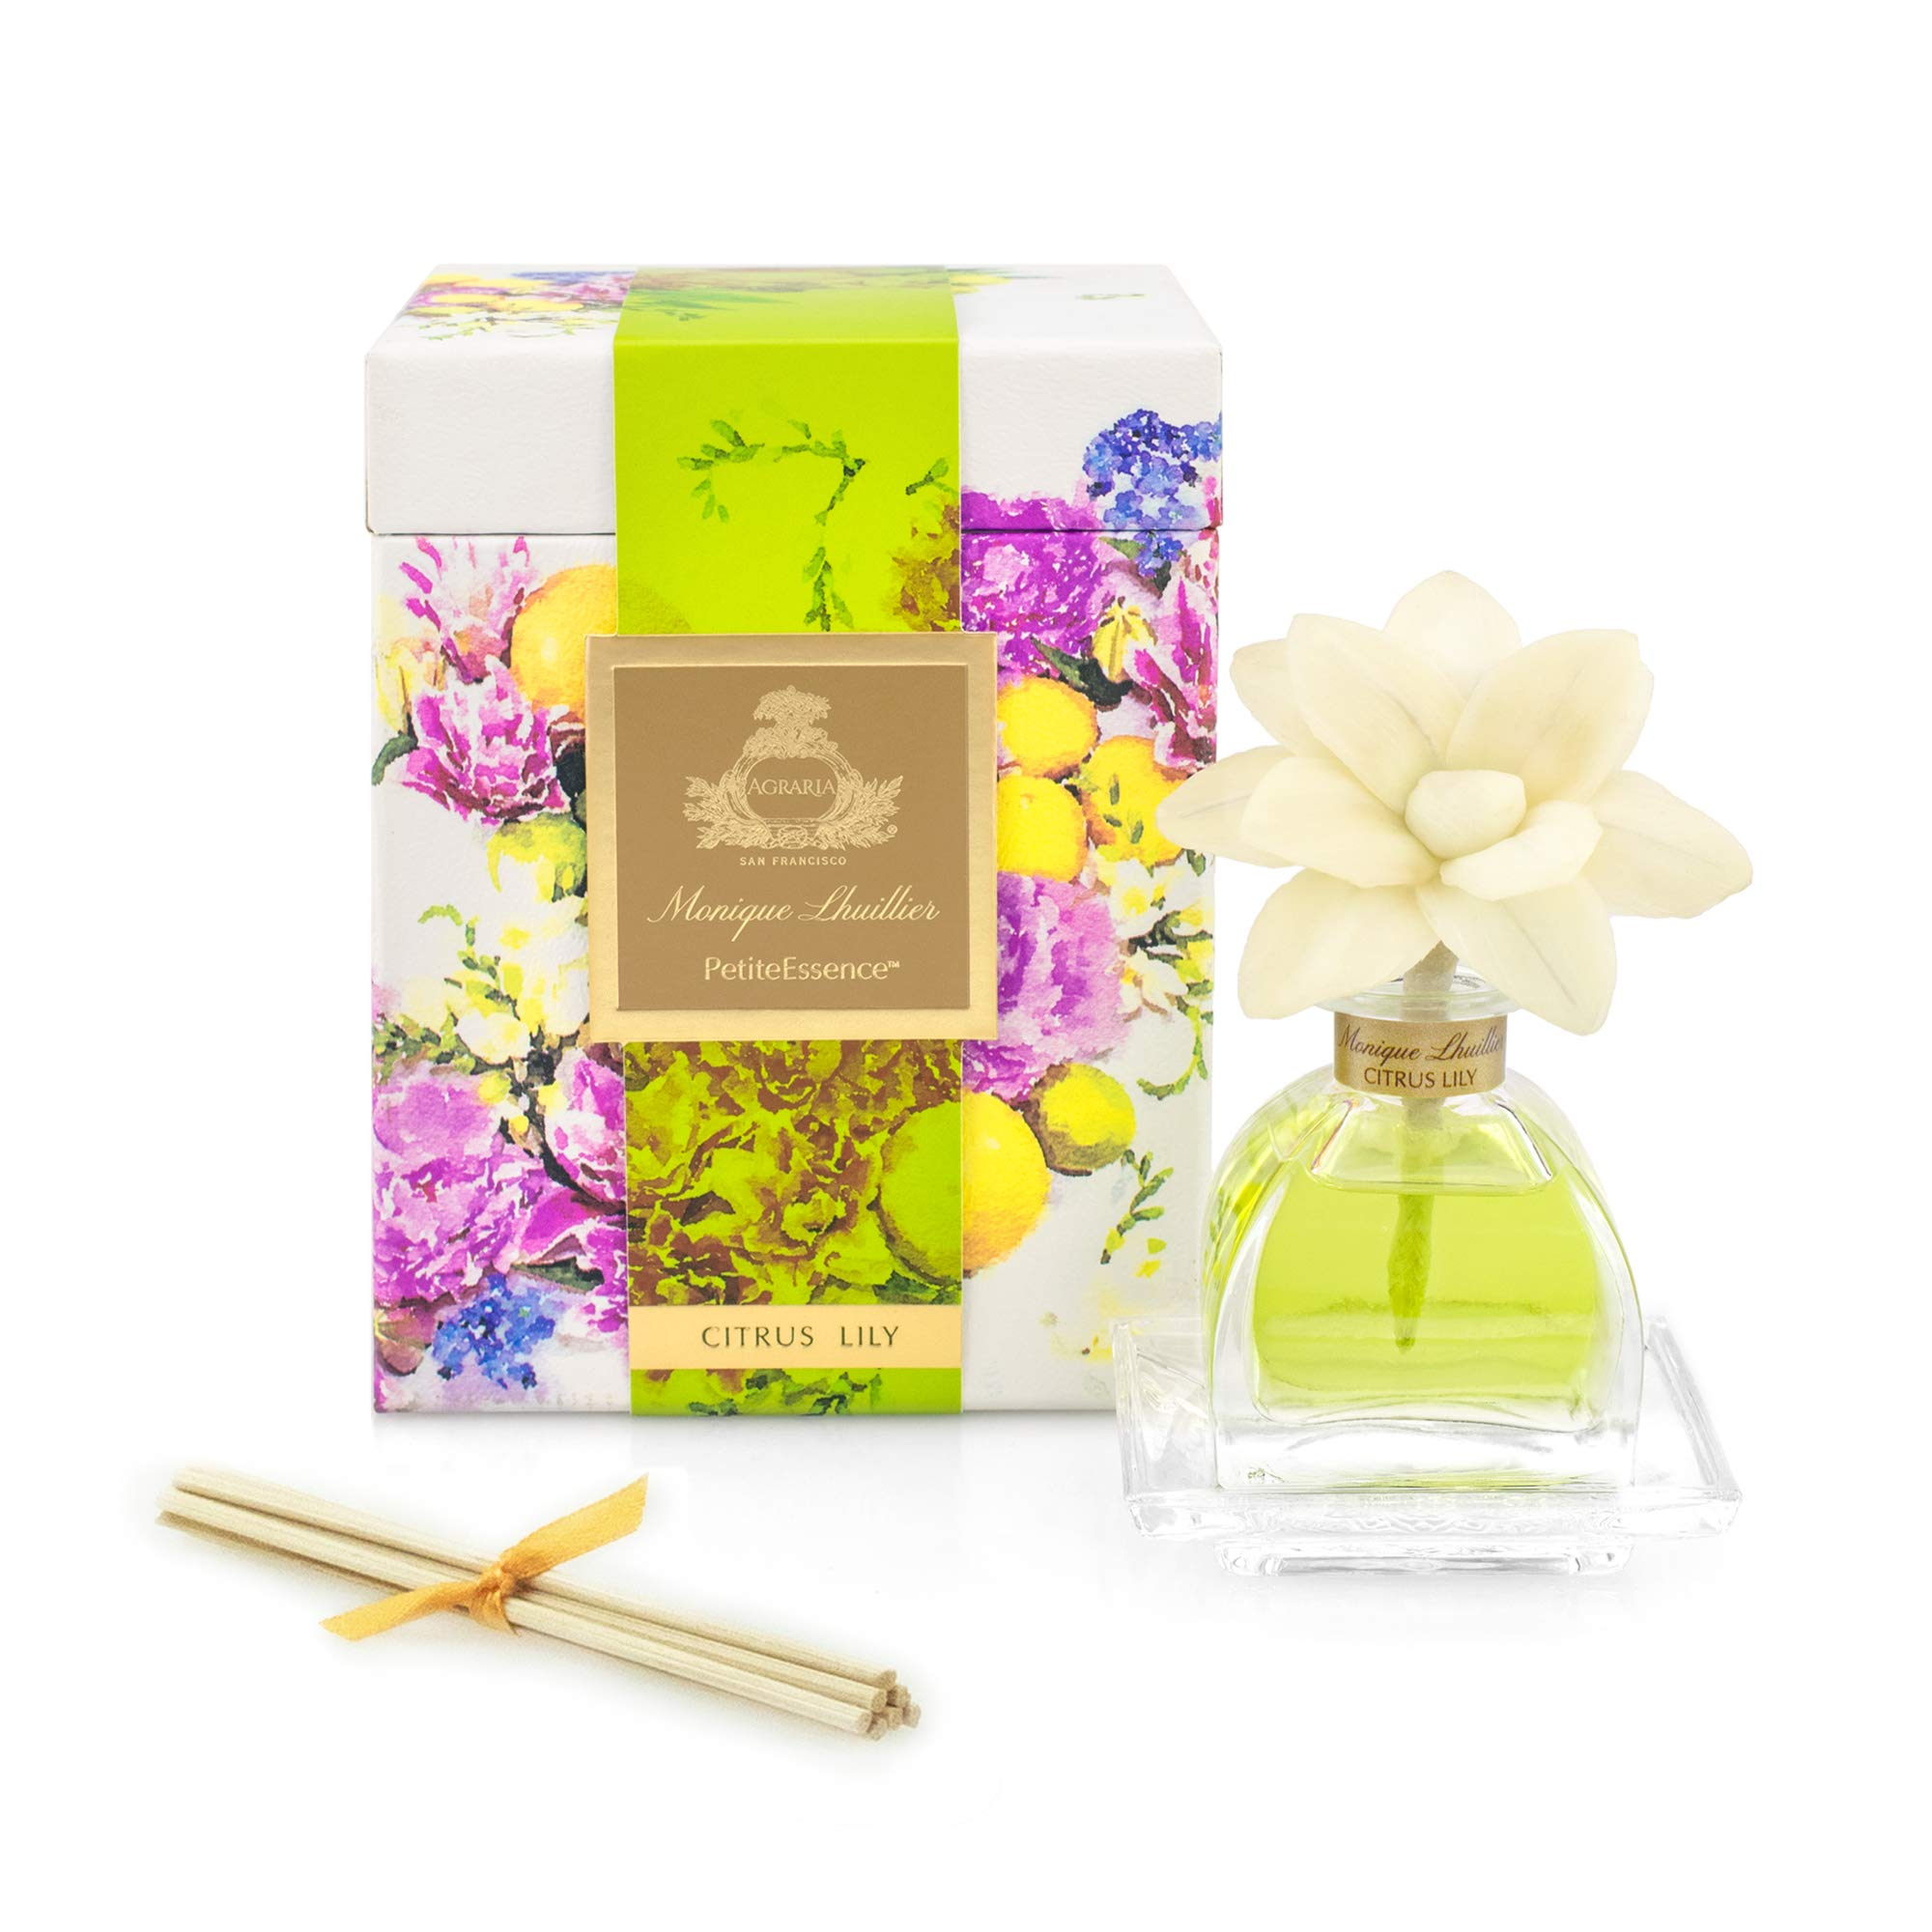 AGRARIA Monique Lhuillier Citrus Lily Scented PetiteEssence Diffuser, 1.7 Ounces with Reeds and a Flower by AGRARIA